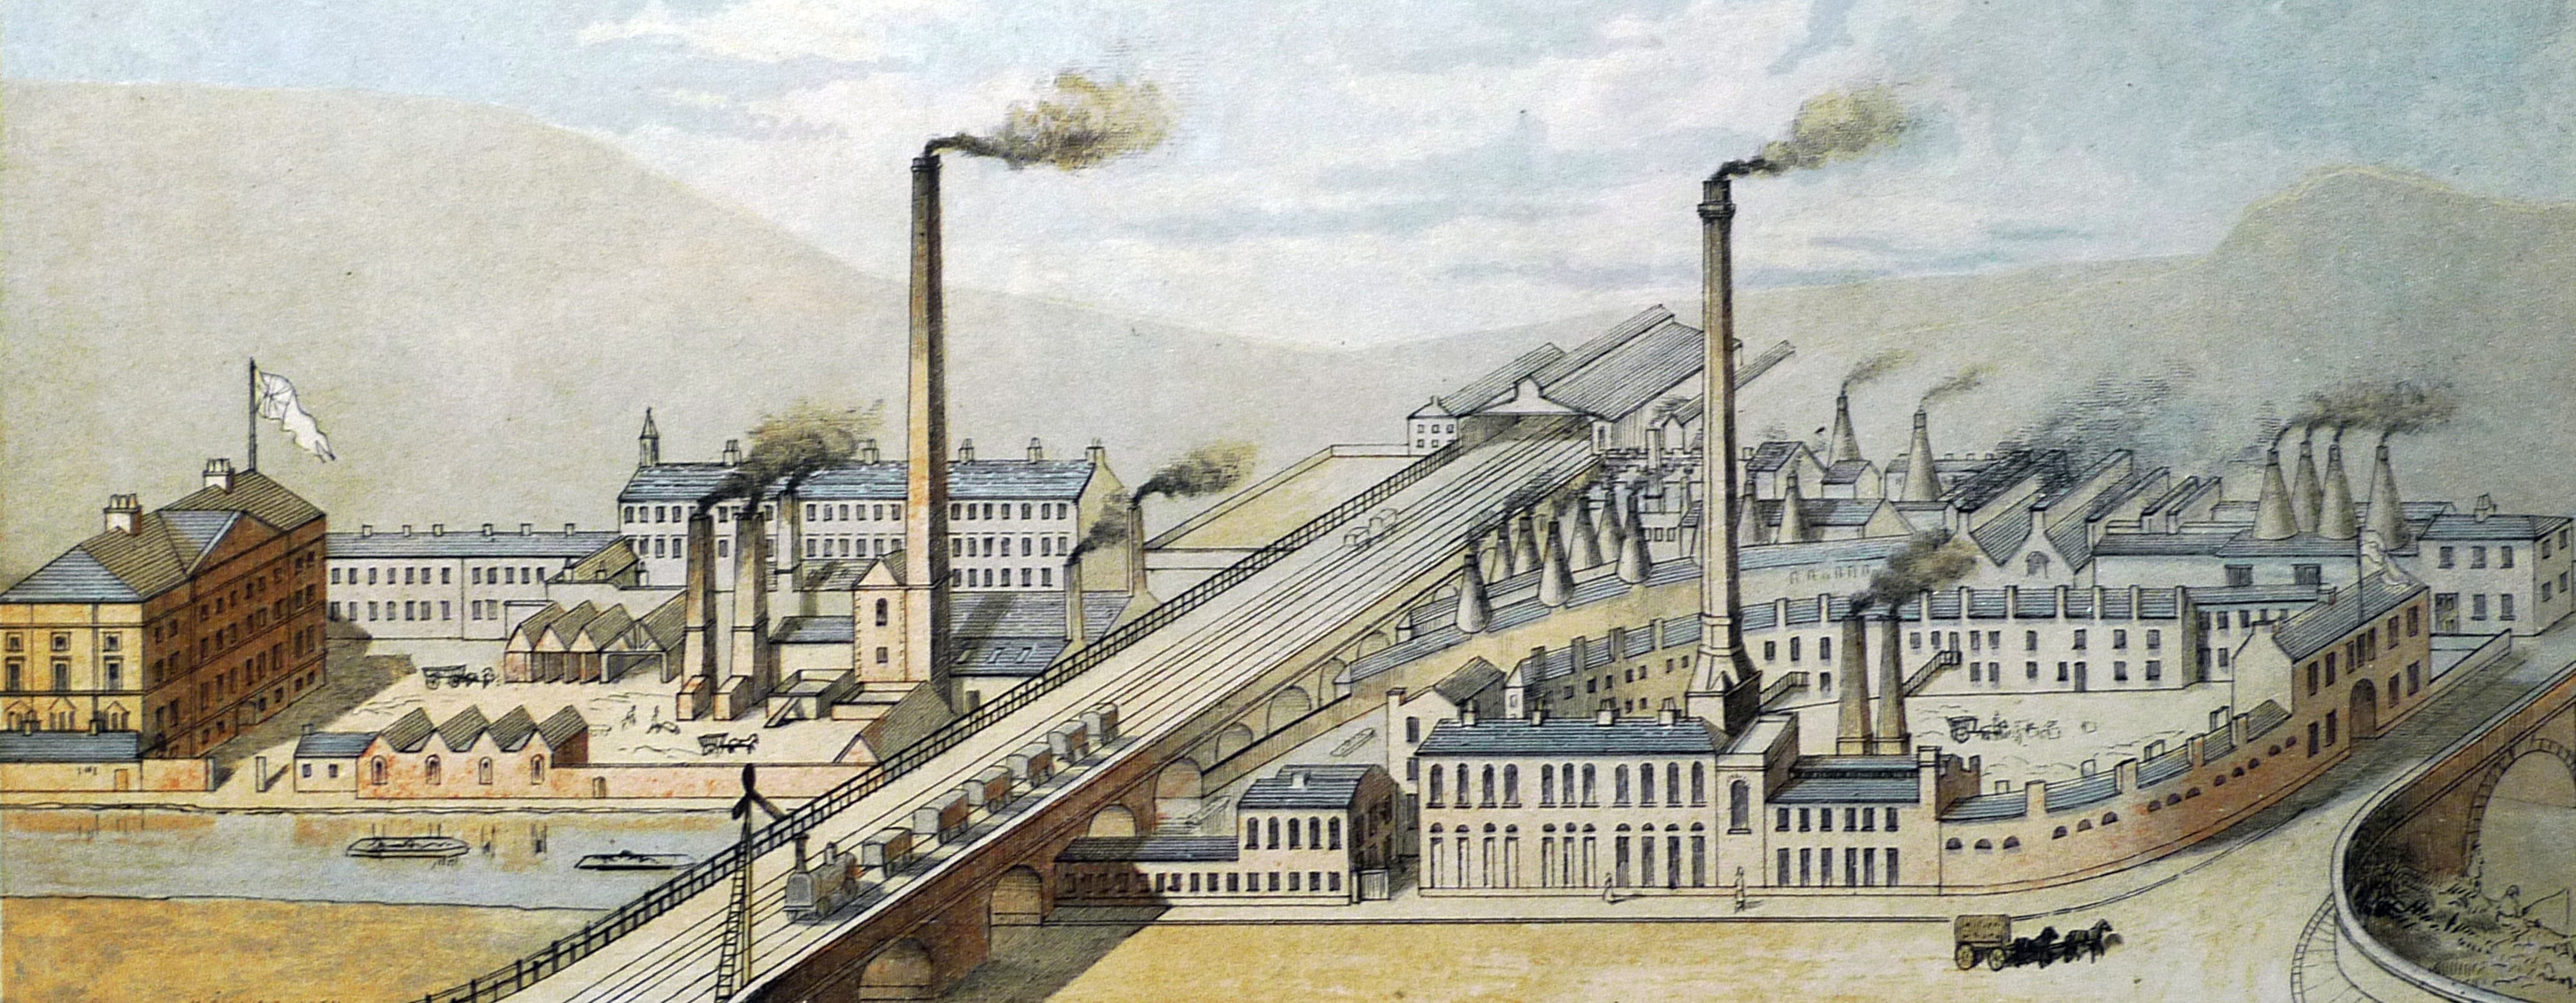 Sheaf Works-engraving